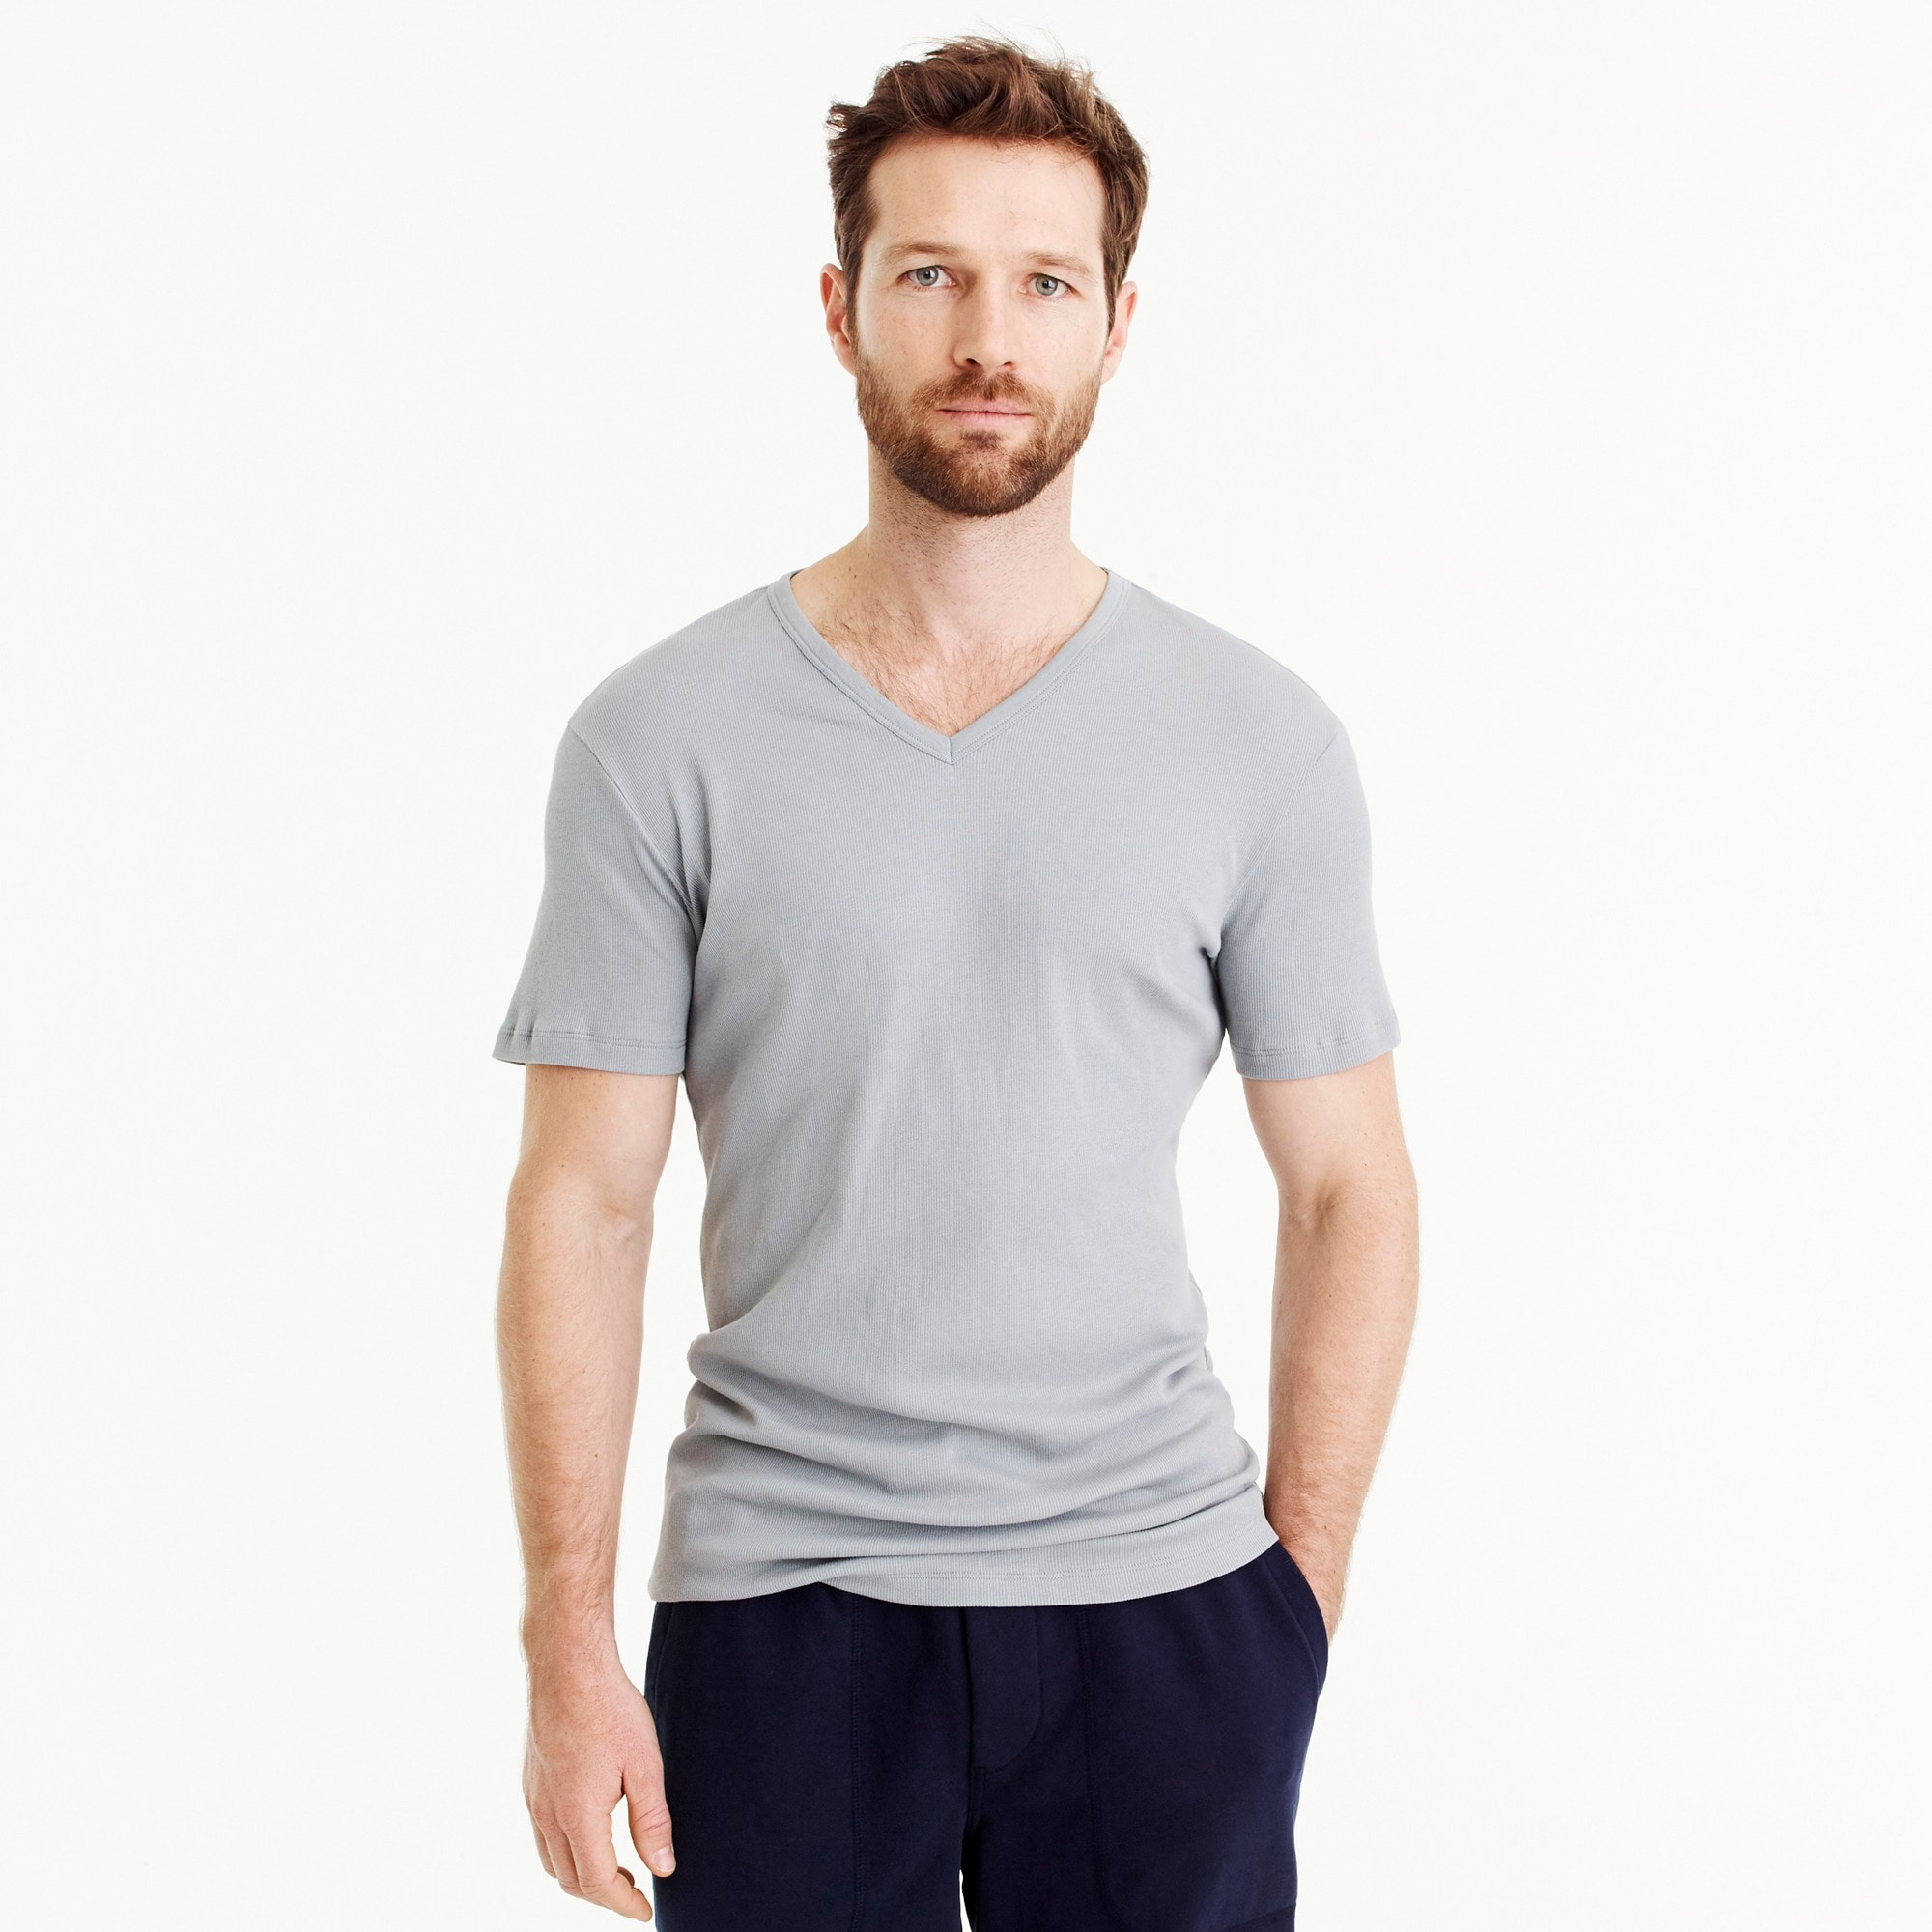 mens Mack Weldon® for J.Crew Prime Cotton V-neck undershirt